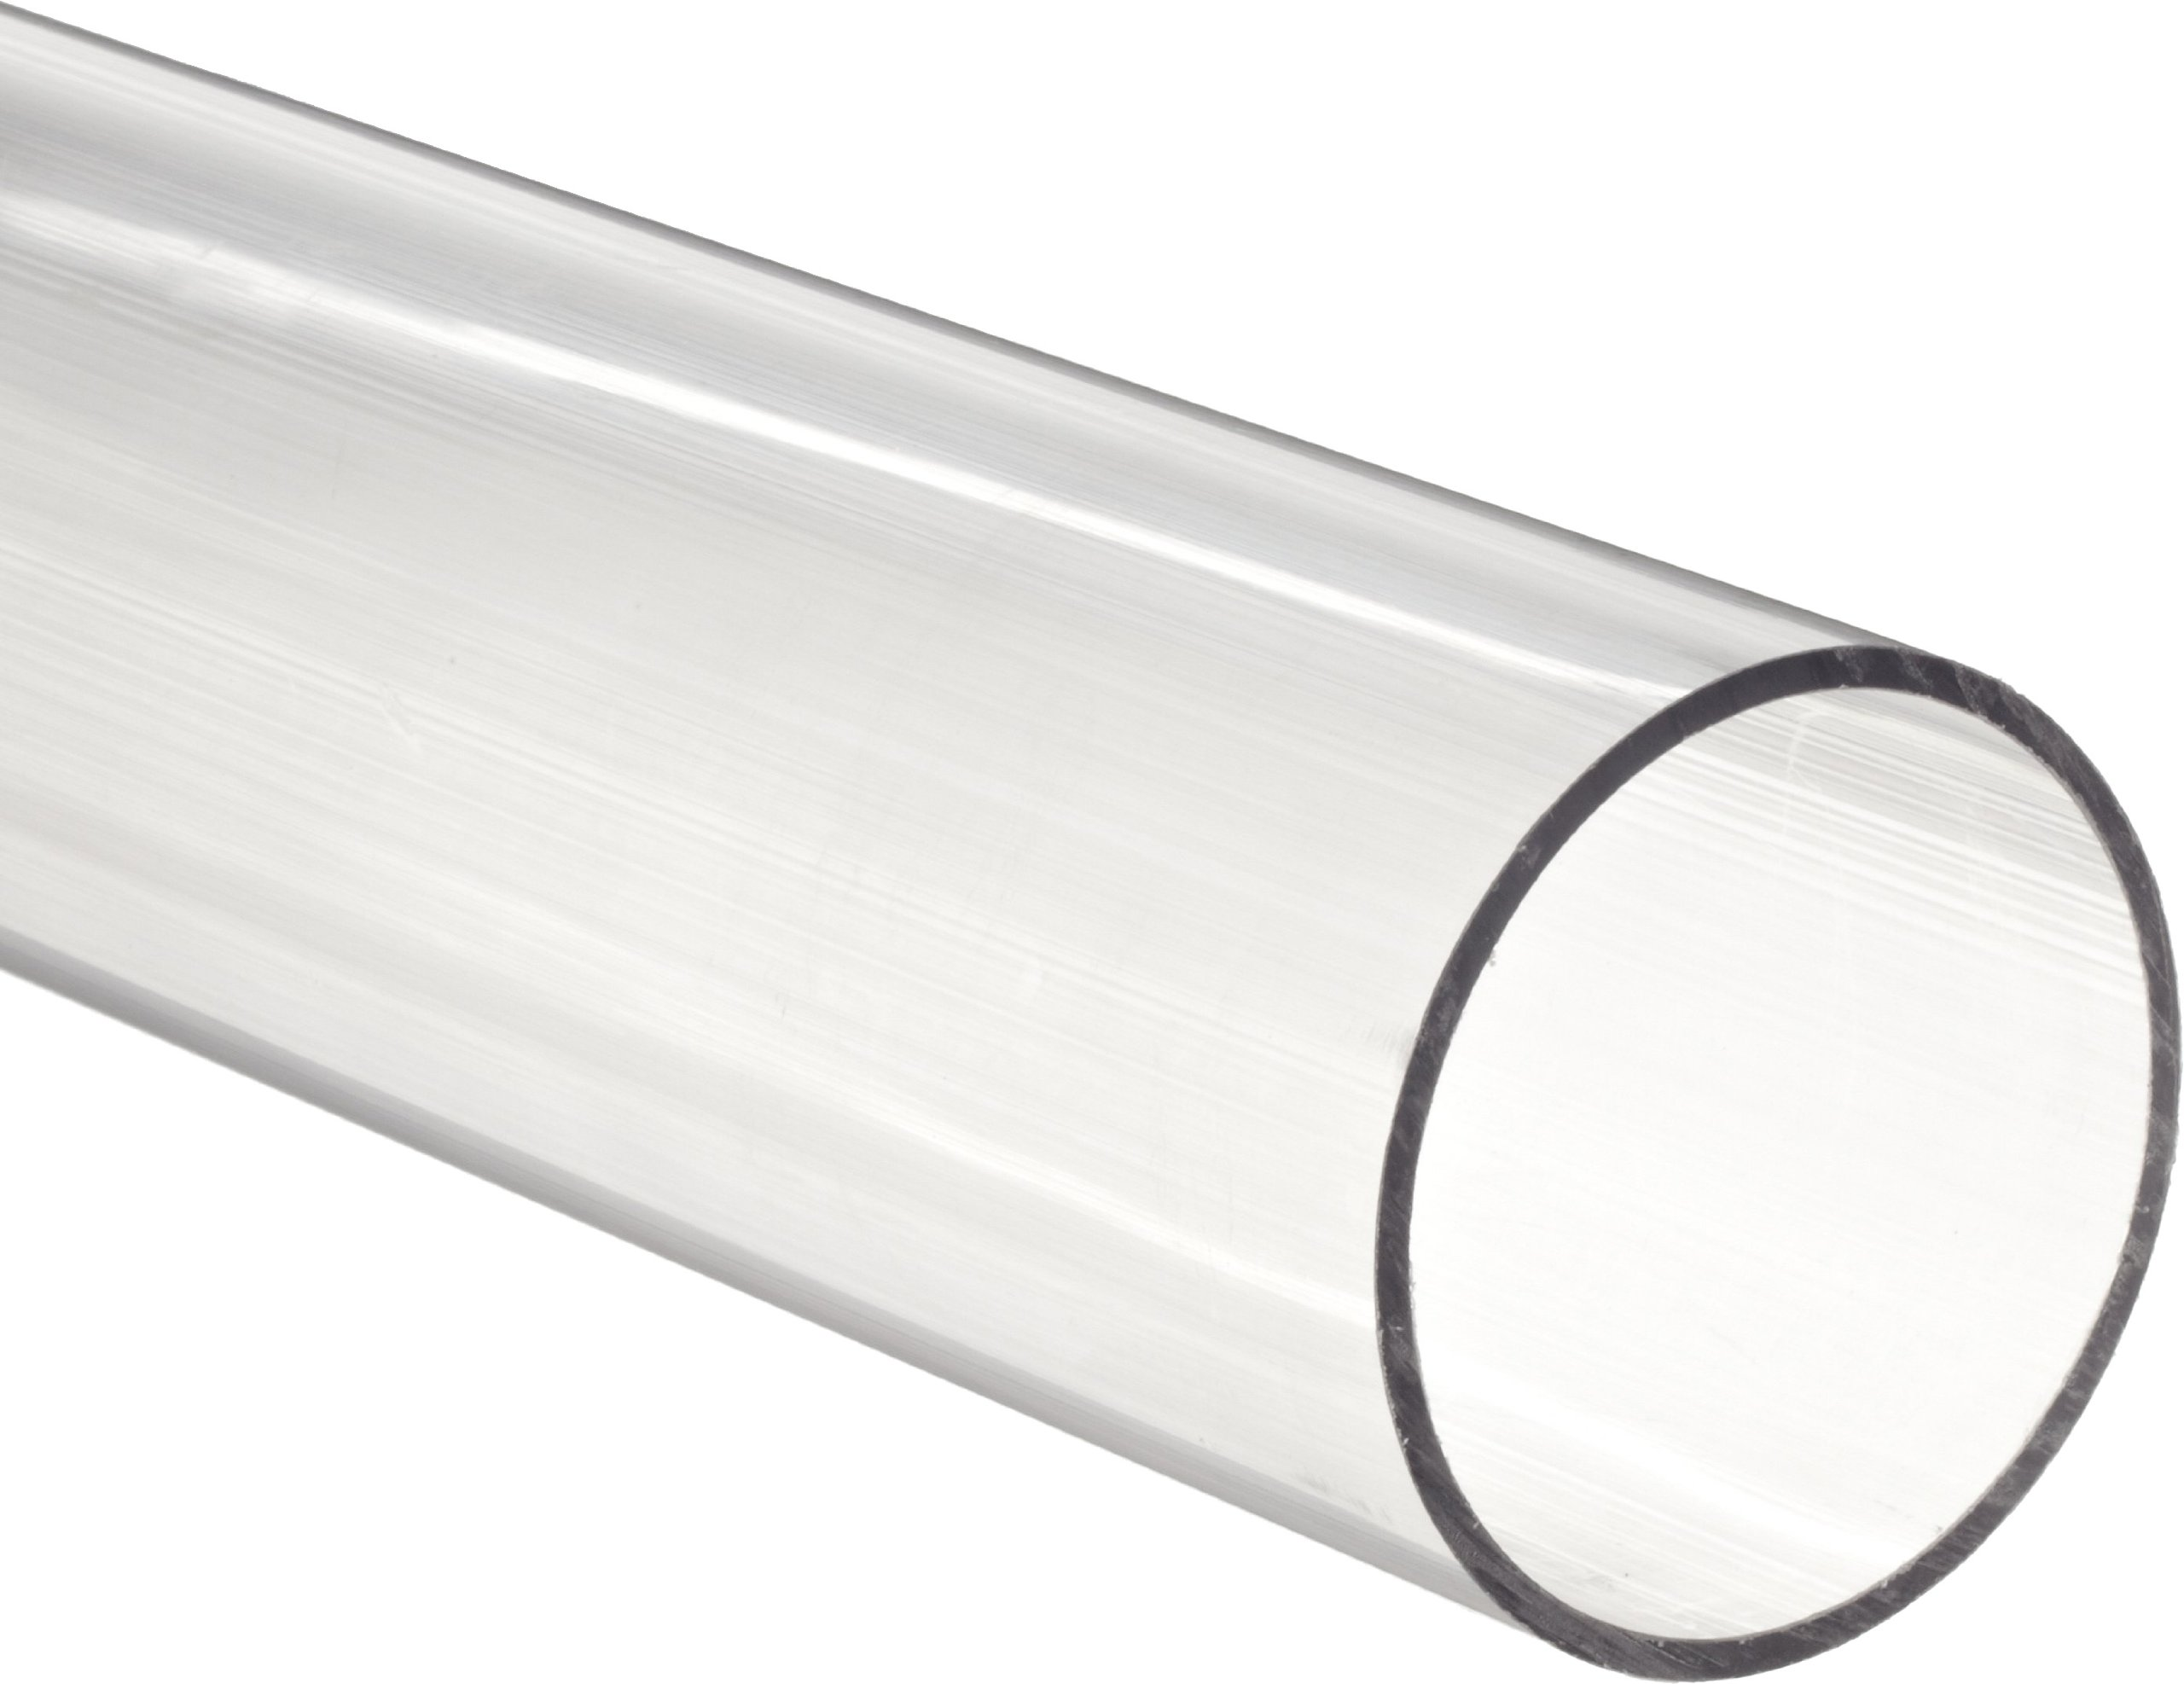 Clear Polycarbonate Tubing, 2-3/4'' ID, 3'' OD, 1/8'' Wall, 3' Length by Small Parts